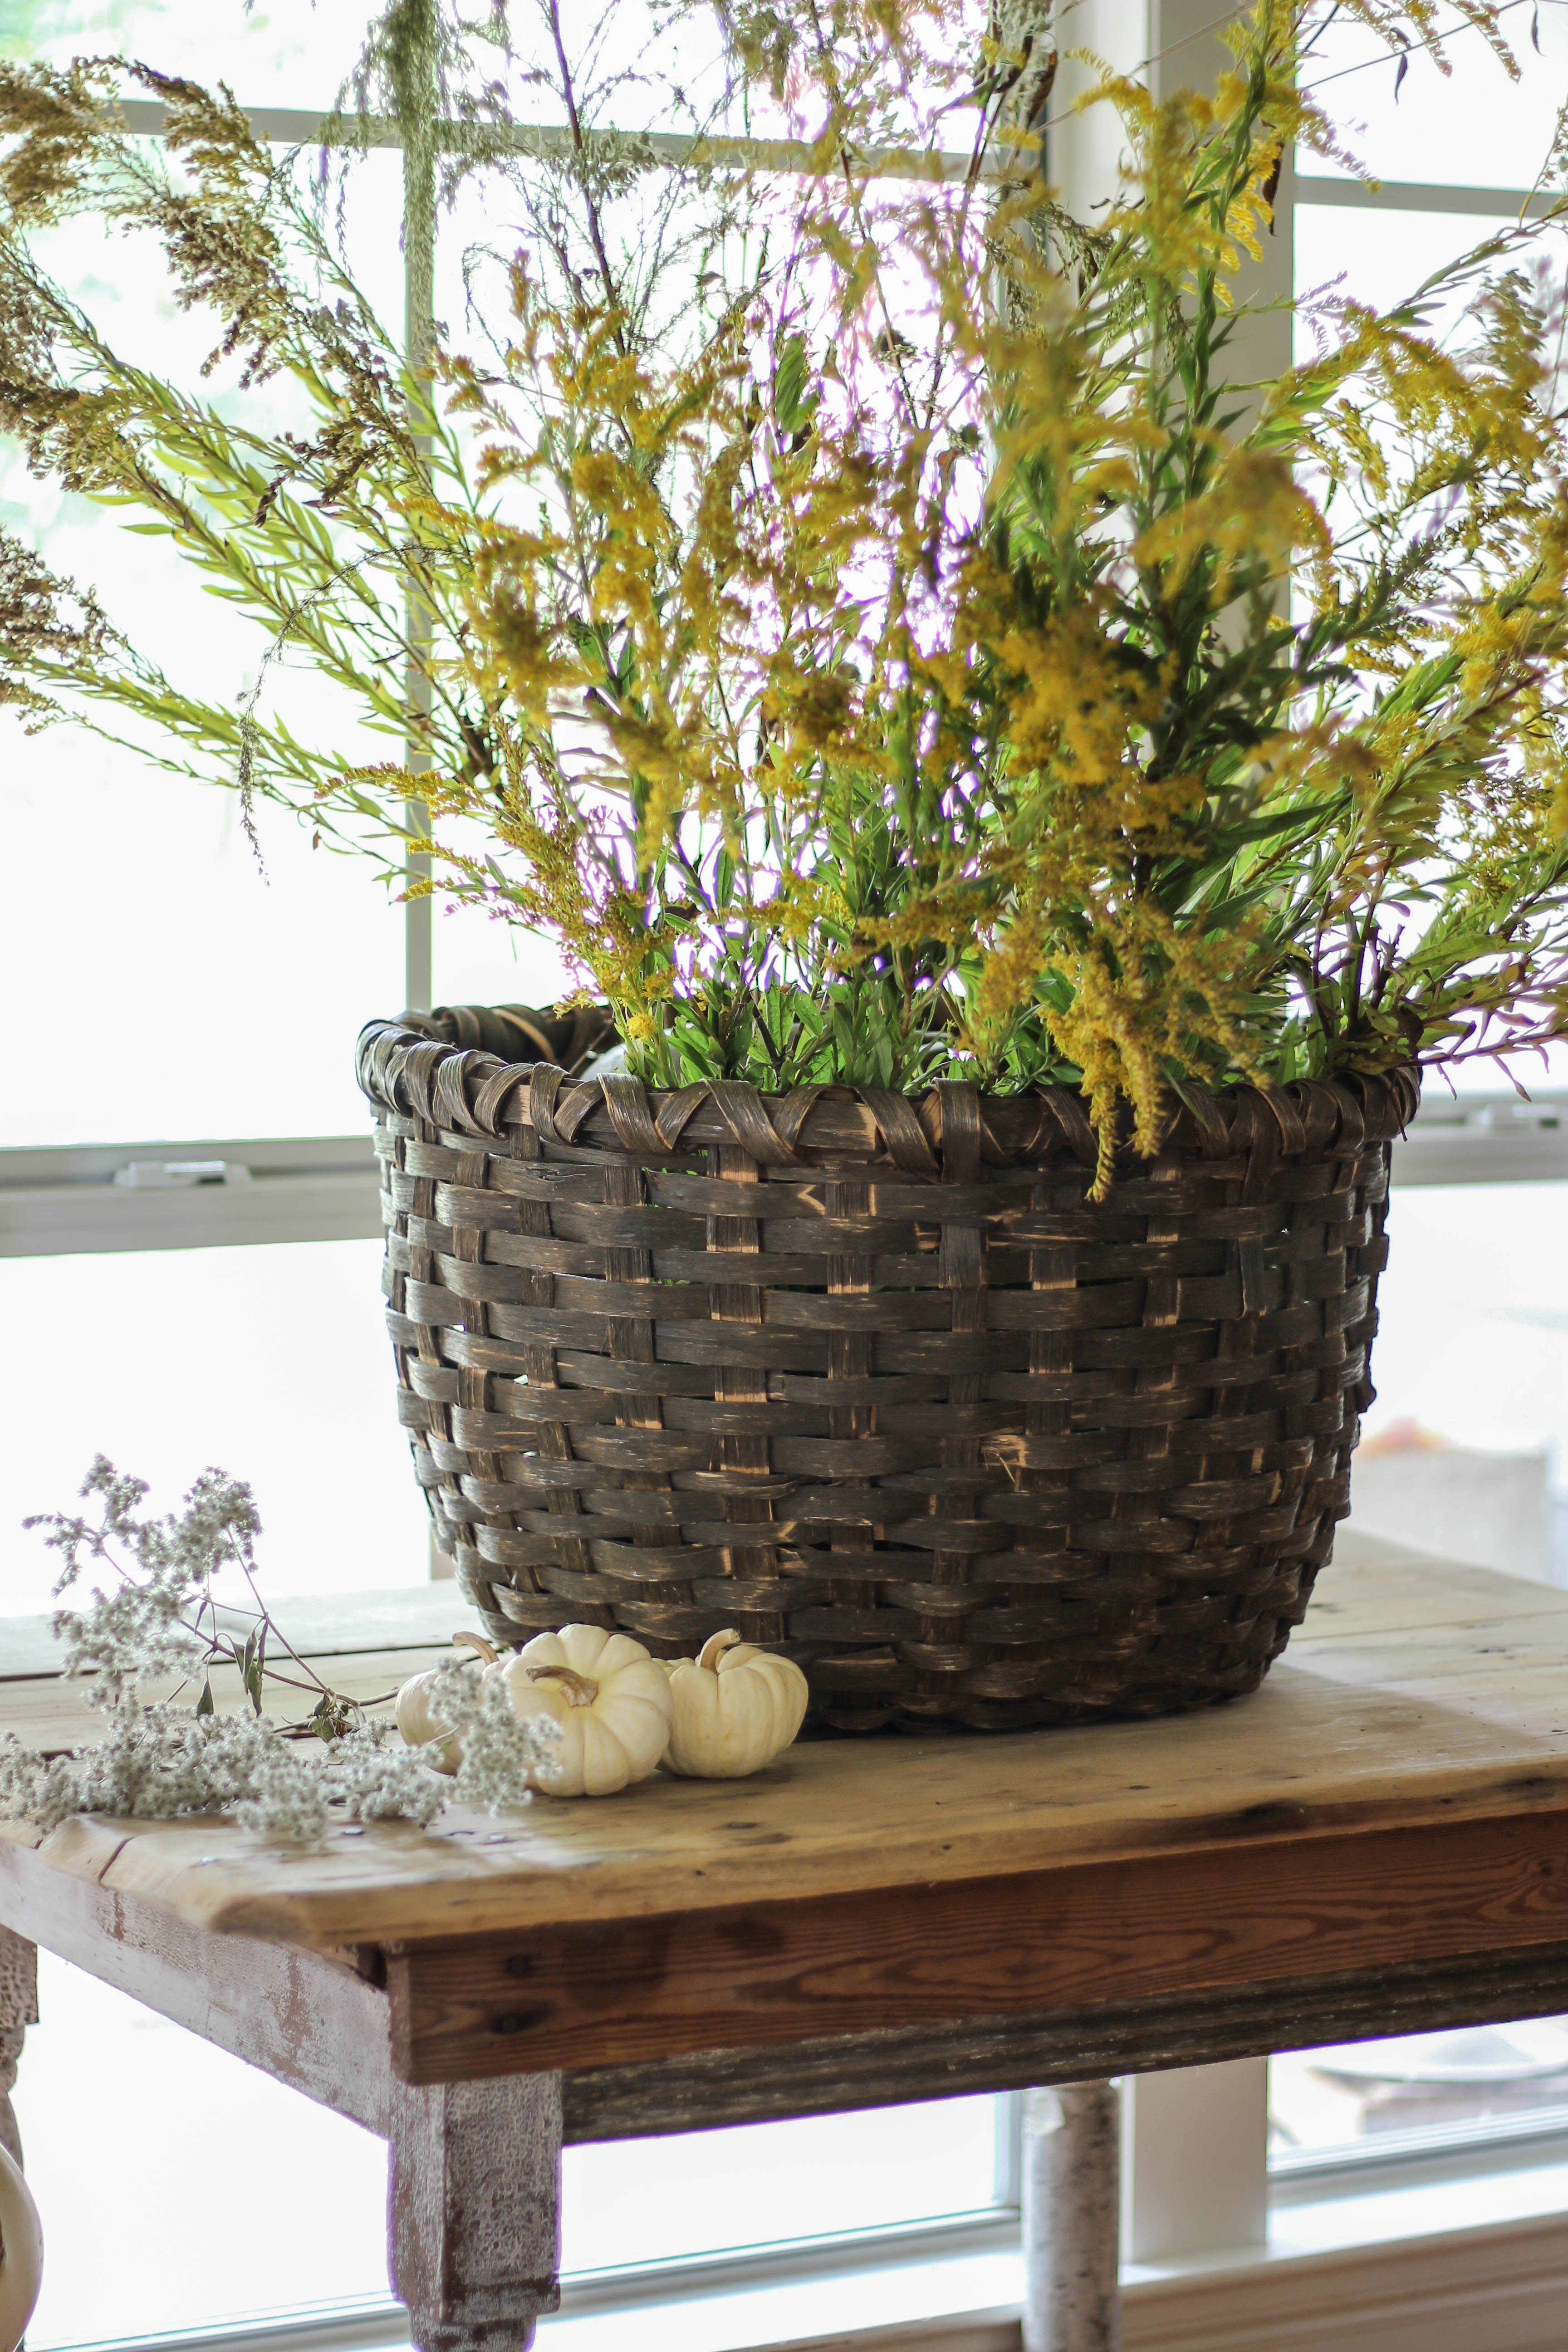 Ideas and tips for how to style vintage fall baskets in your home. Budget friendly ideas, using natural elements that you can find in your backyard!